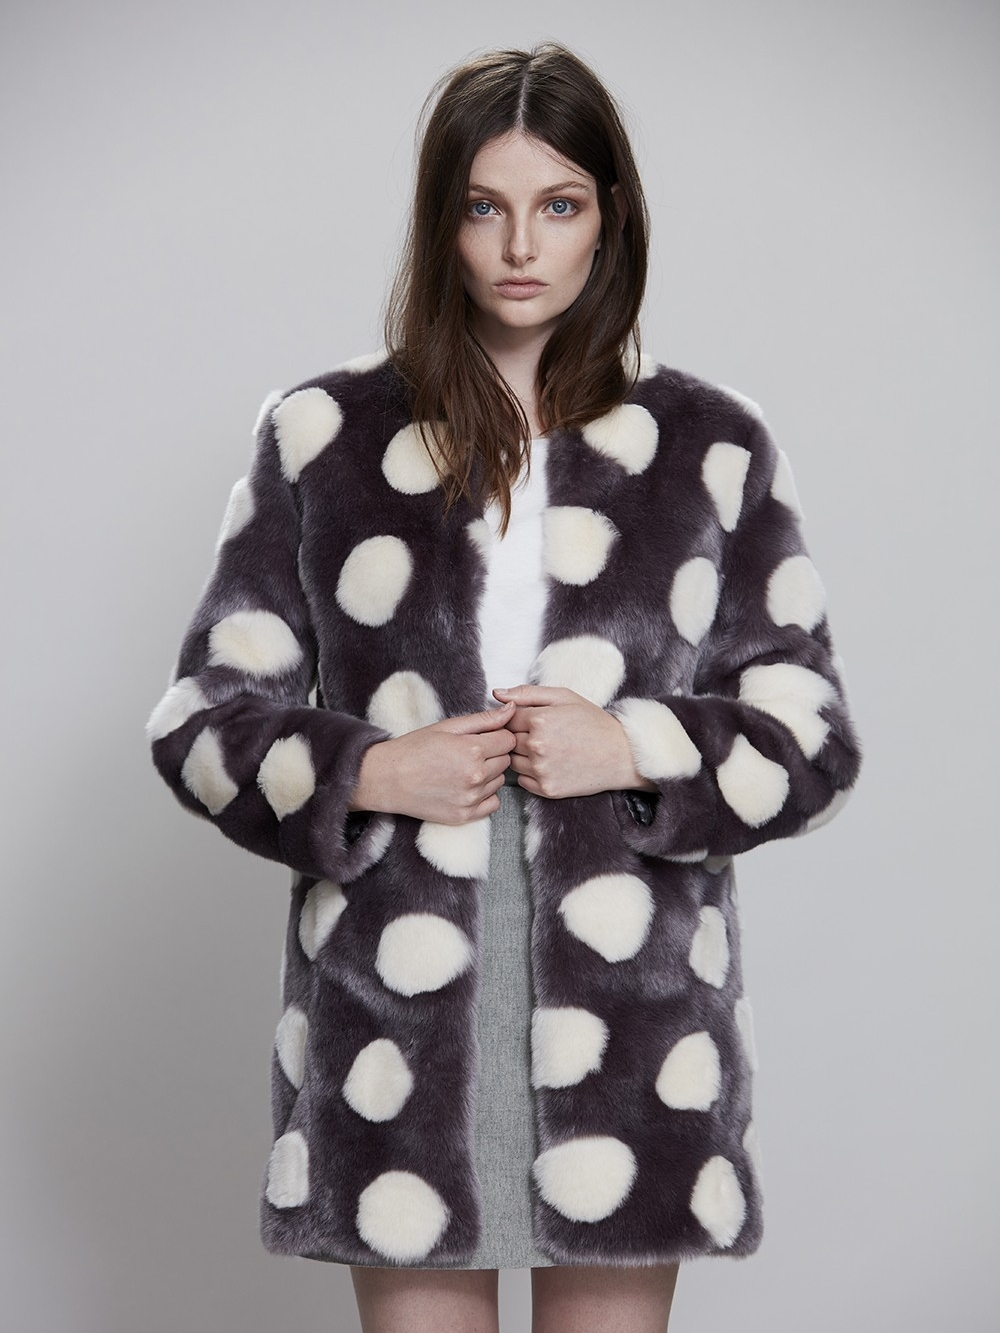 Best Faux Fur Coat: Bubbles Coat by Unreal Fur